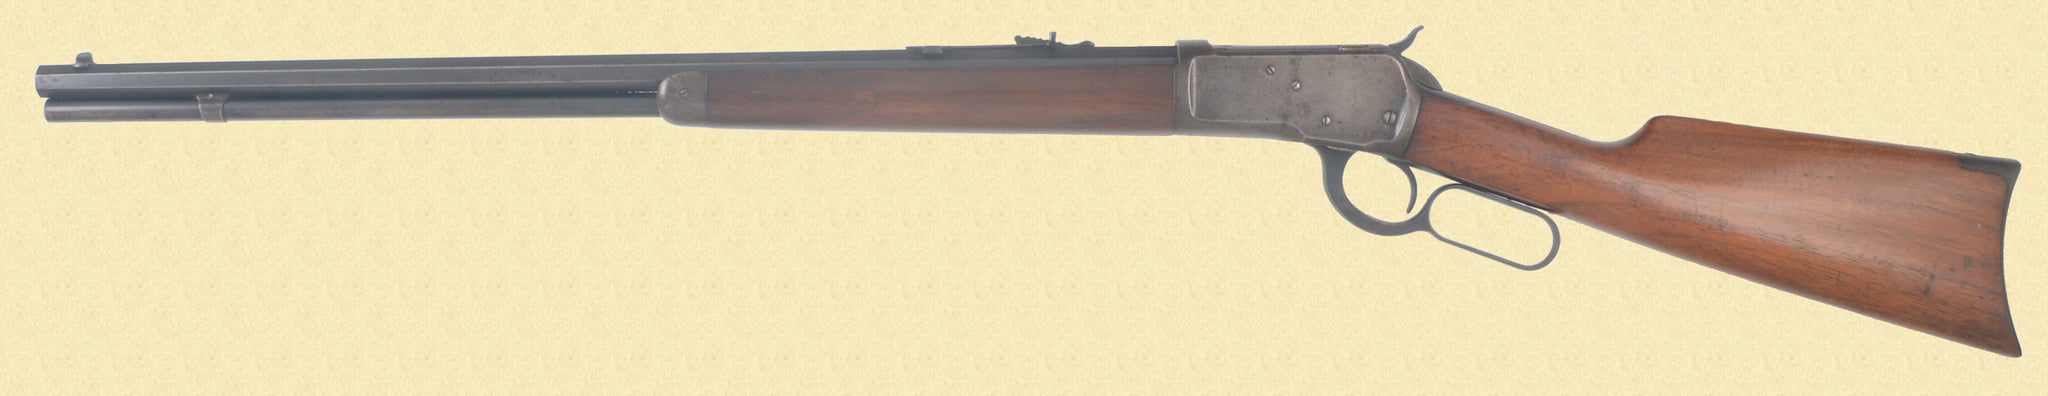 WINCHESTER 1892 RIFLE